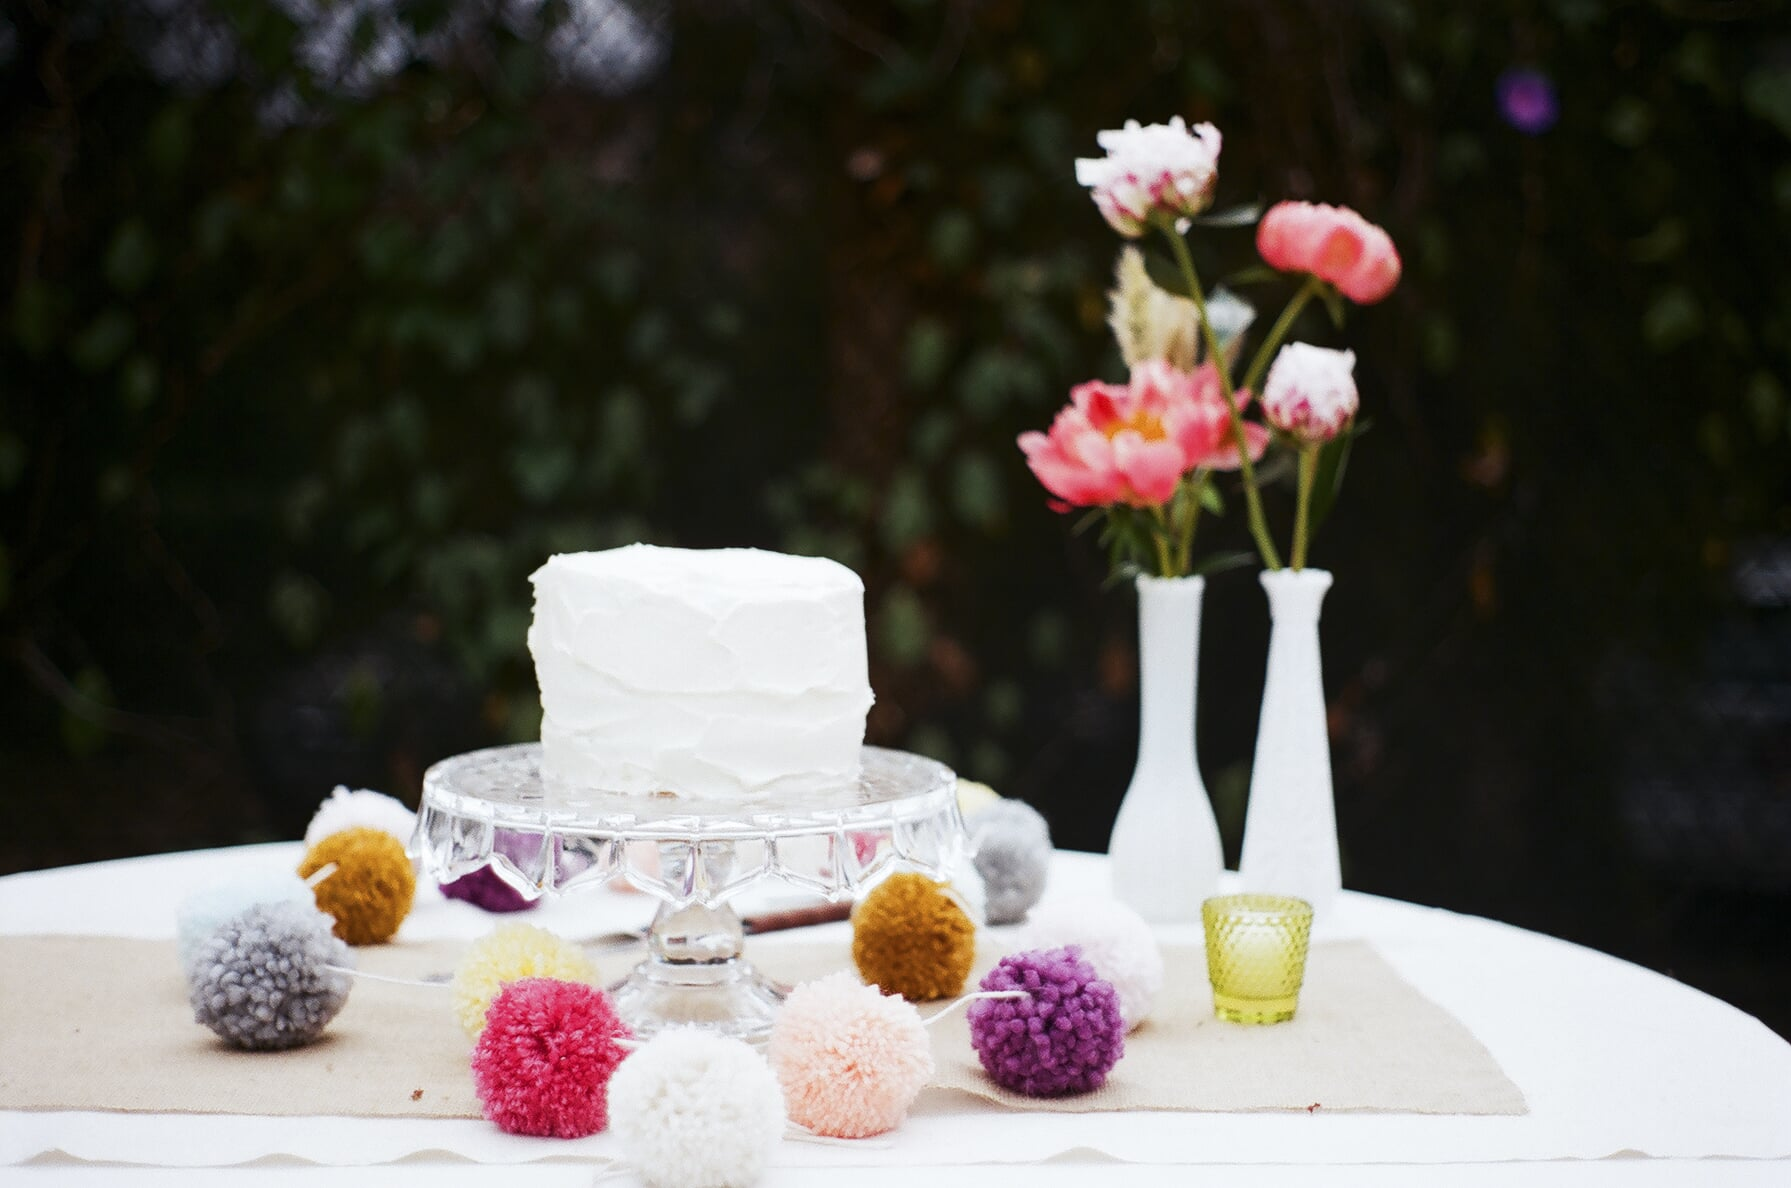 Instead of adding flowers directly to the cake keep it plain and